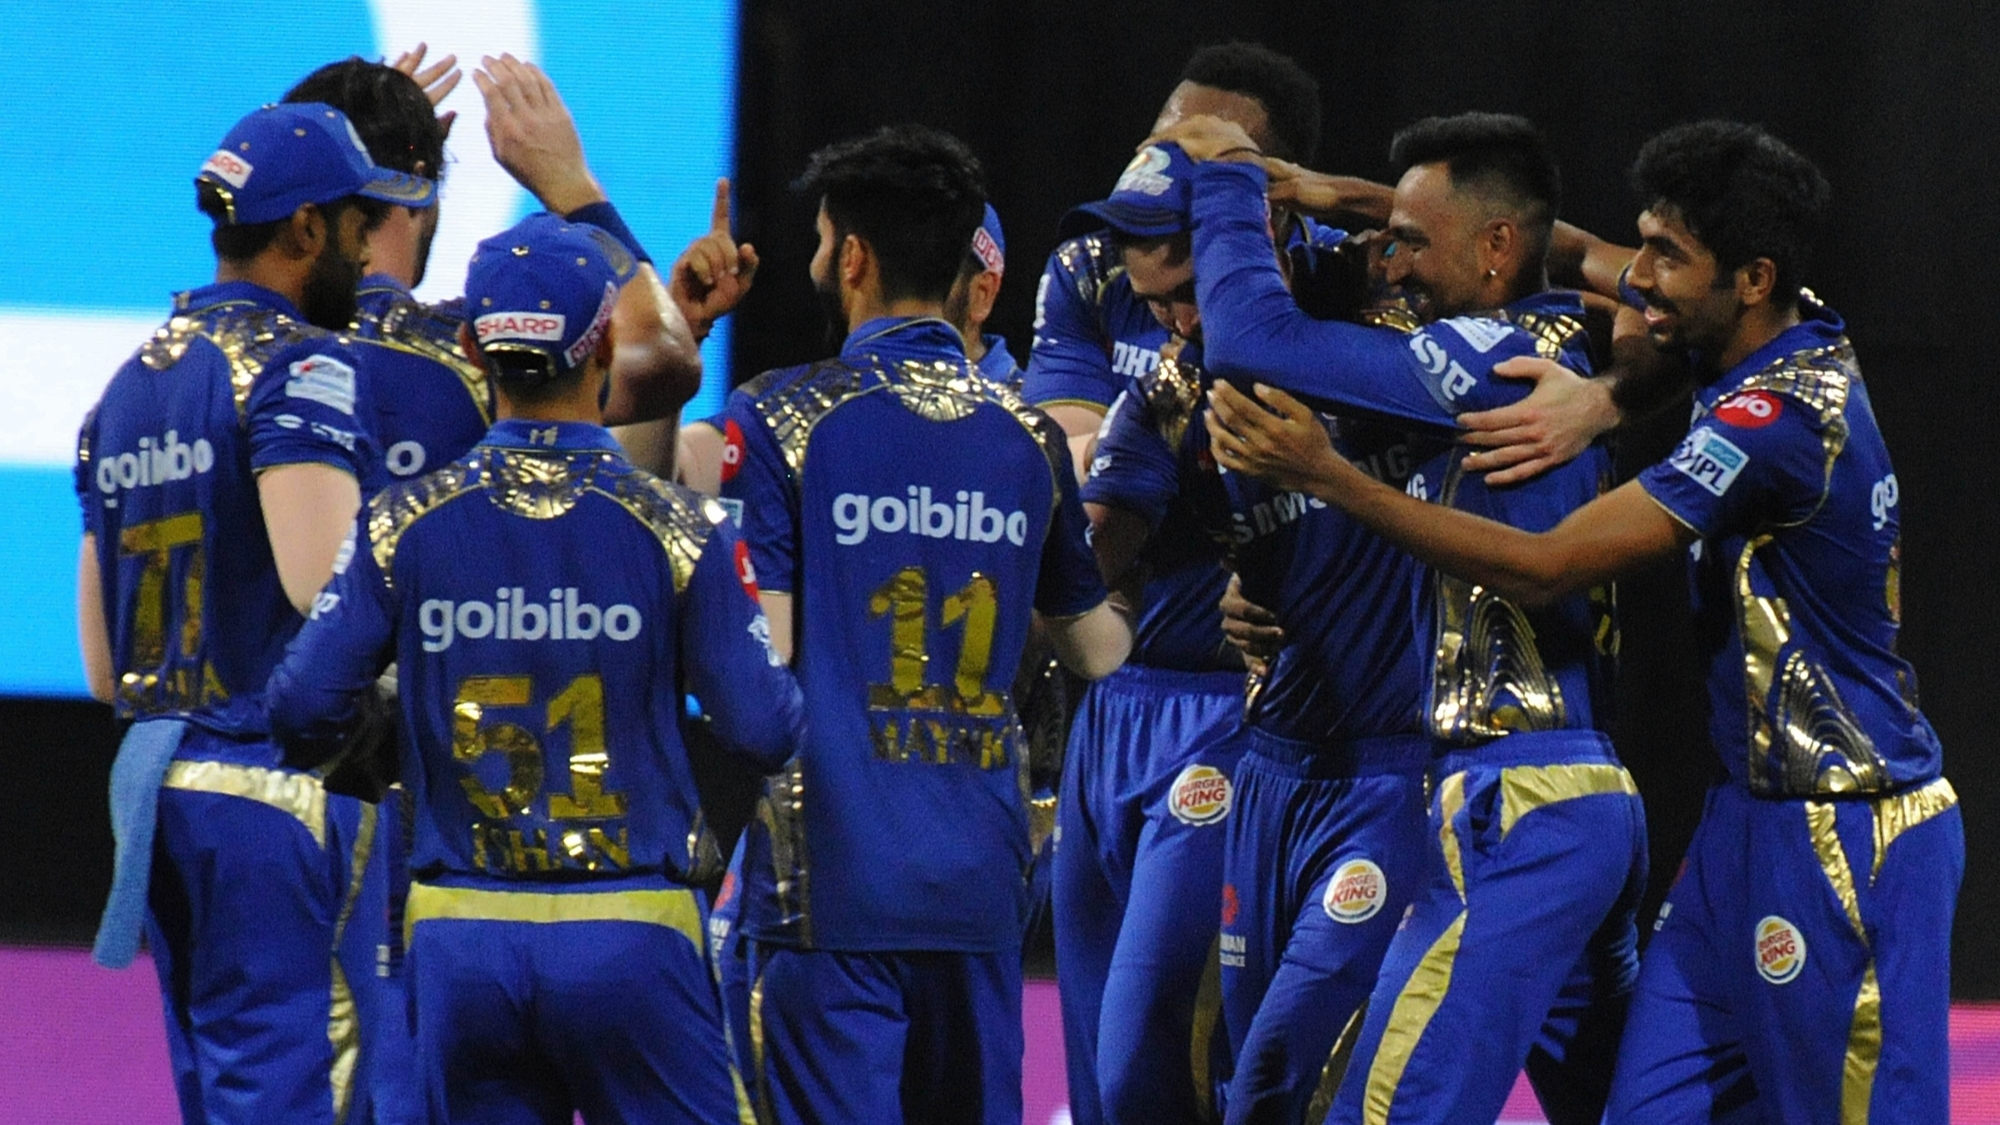 IPL 2018: Twitter reacts as Mumbai Indians pull off a thrilling win over KXIP despite KL Rahul's heroics